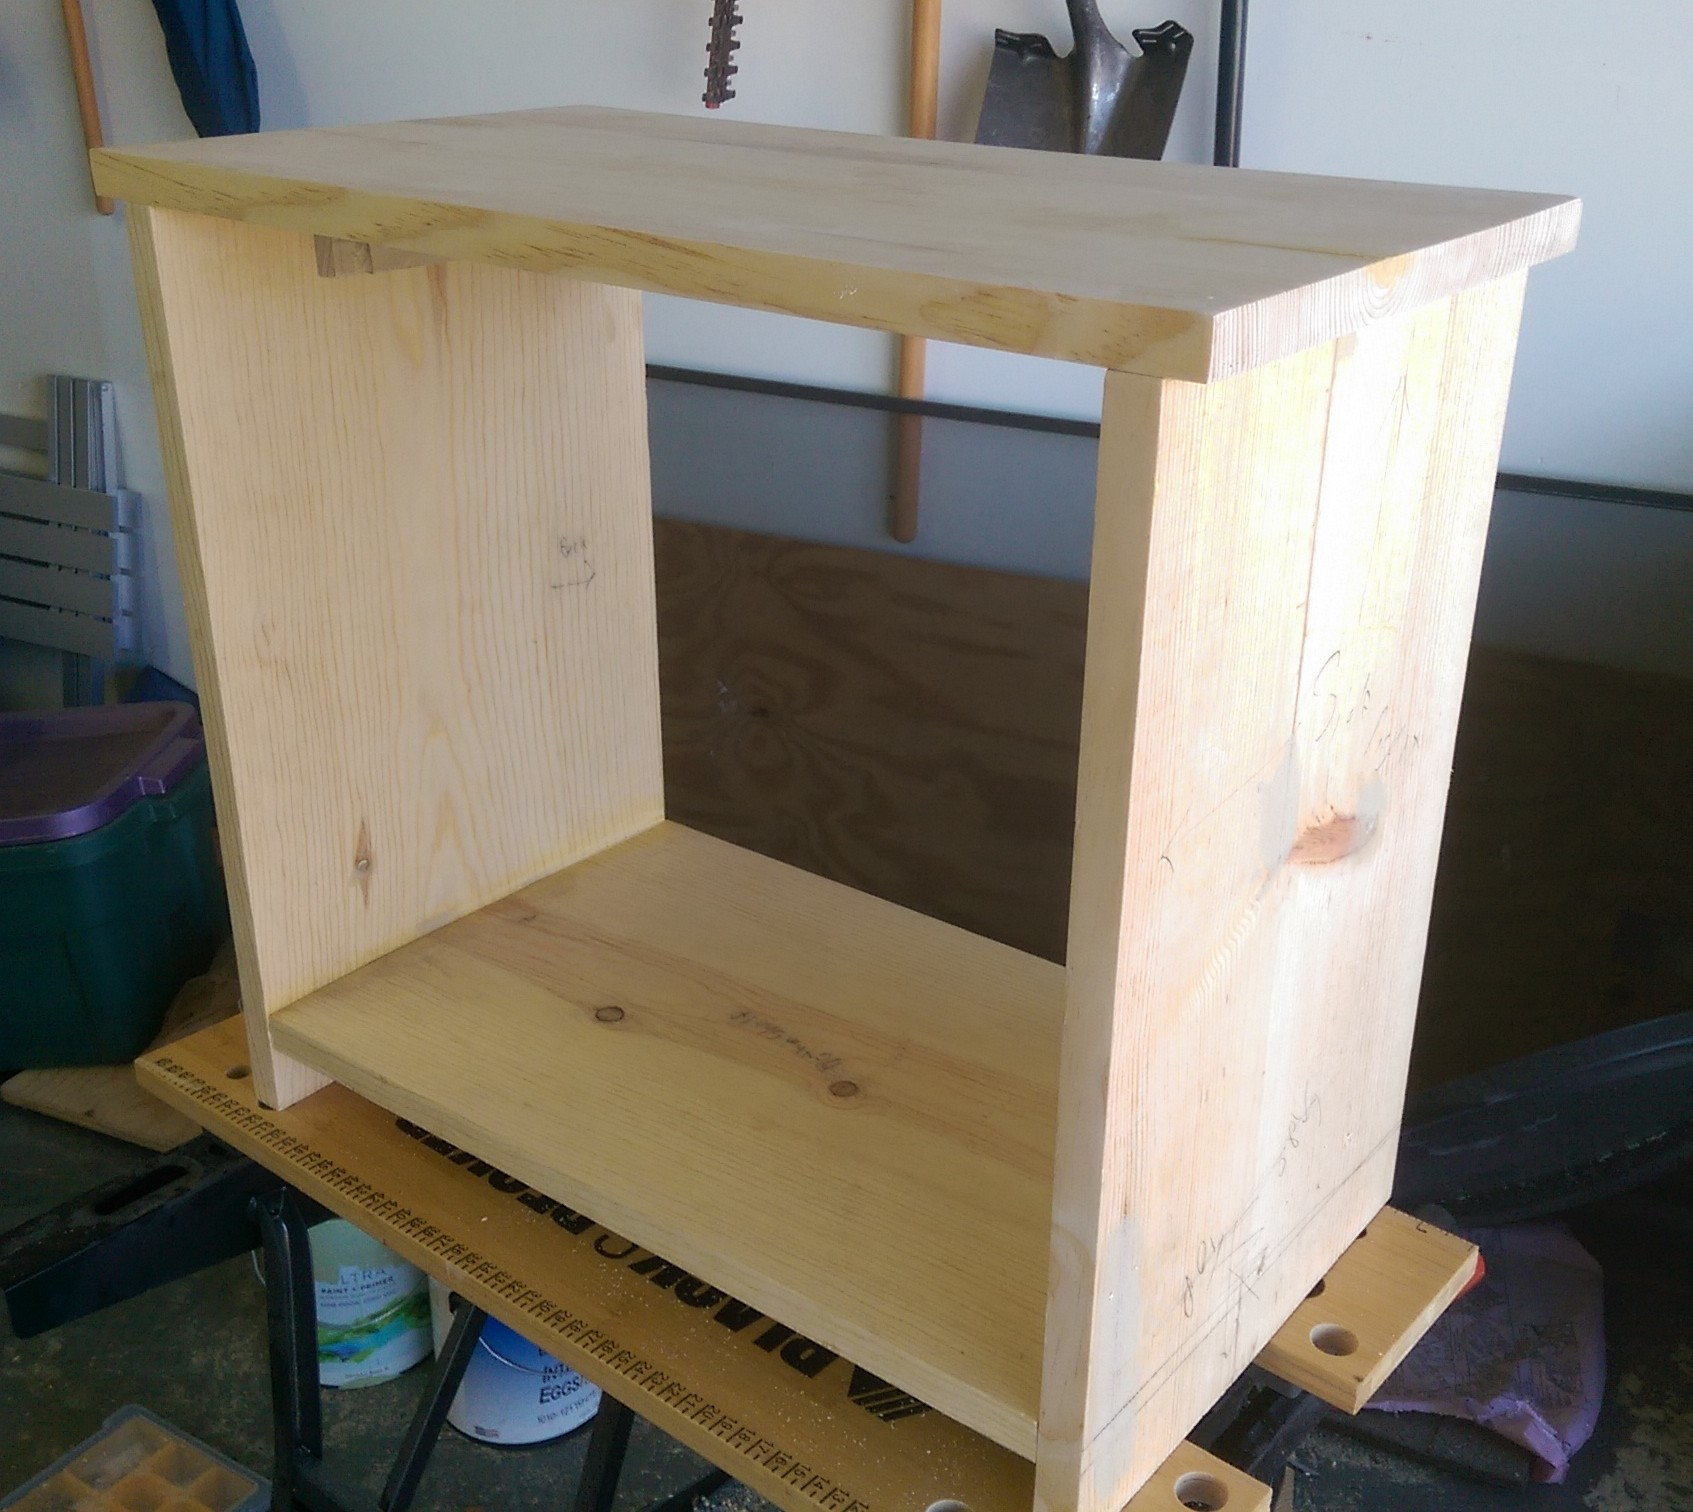 Toddler Bed Night Stand Design And Construction